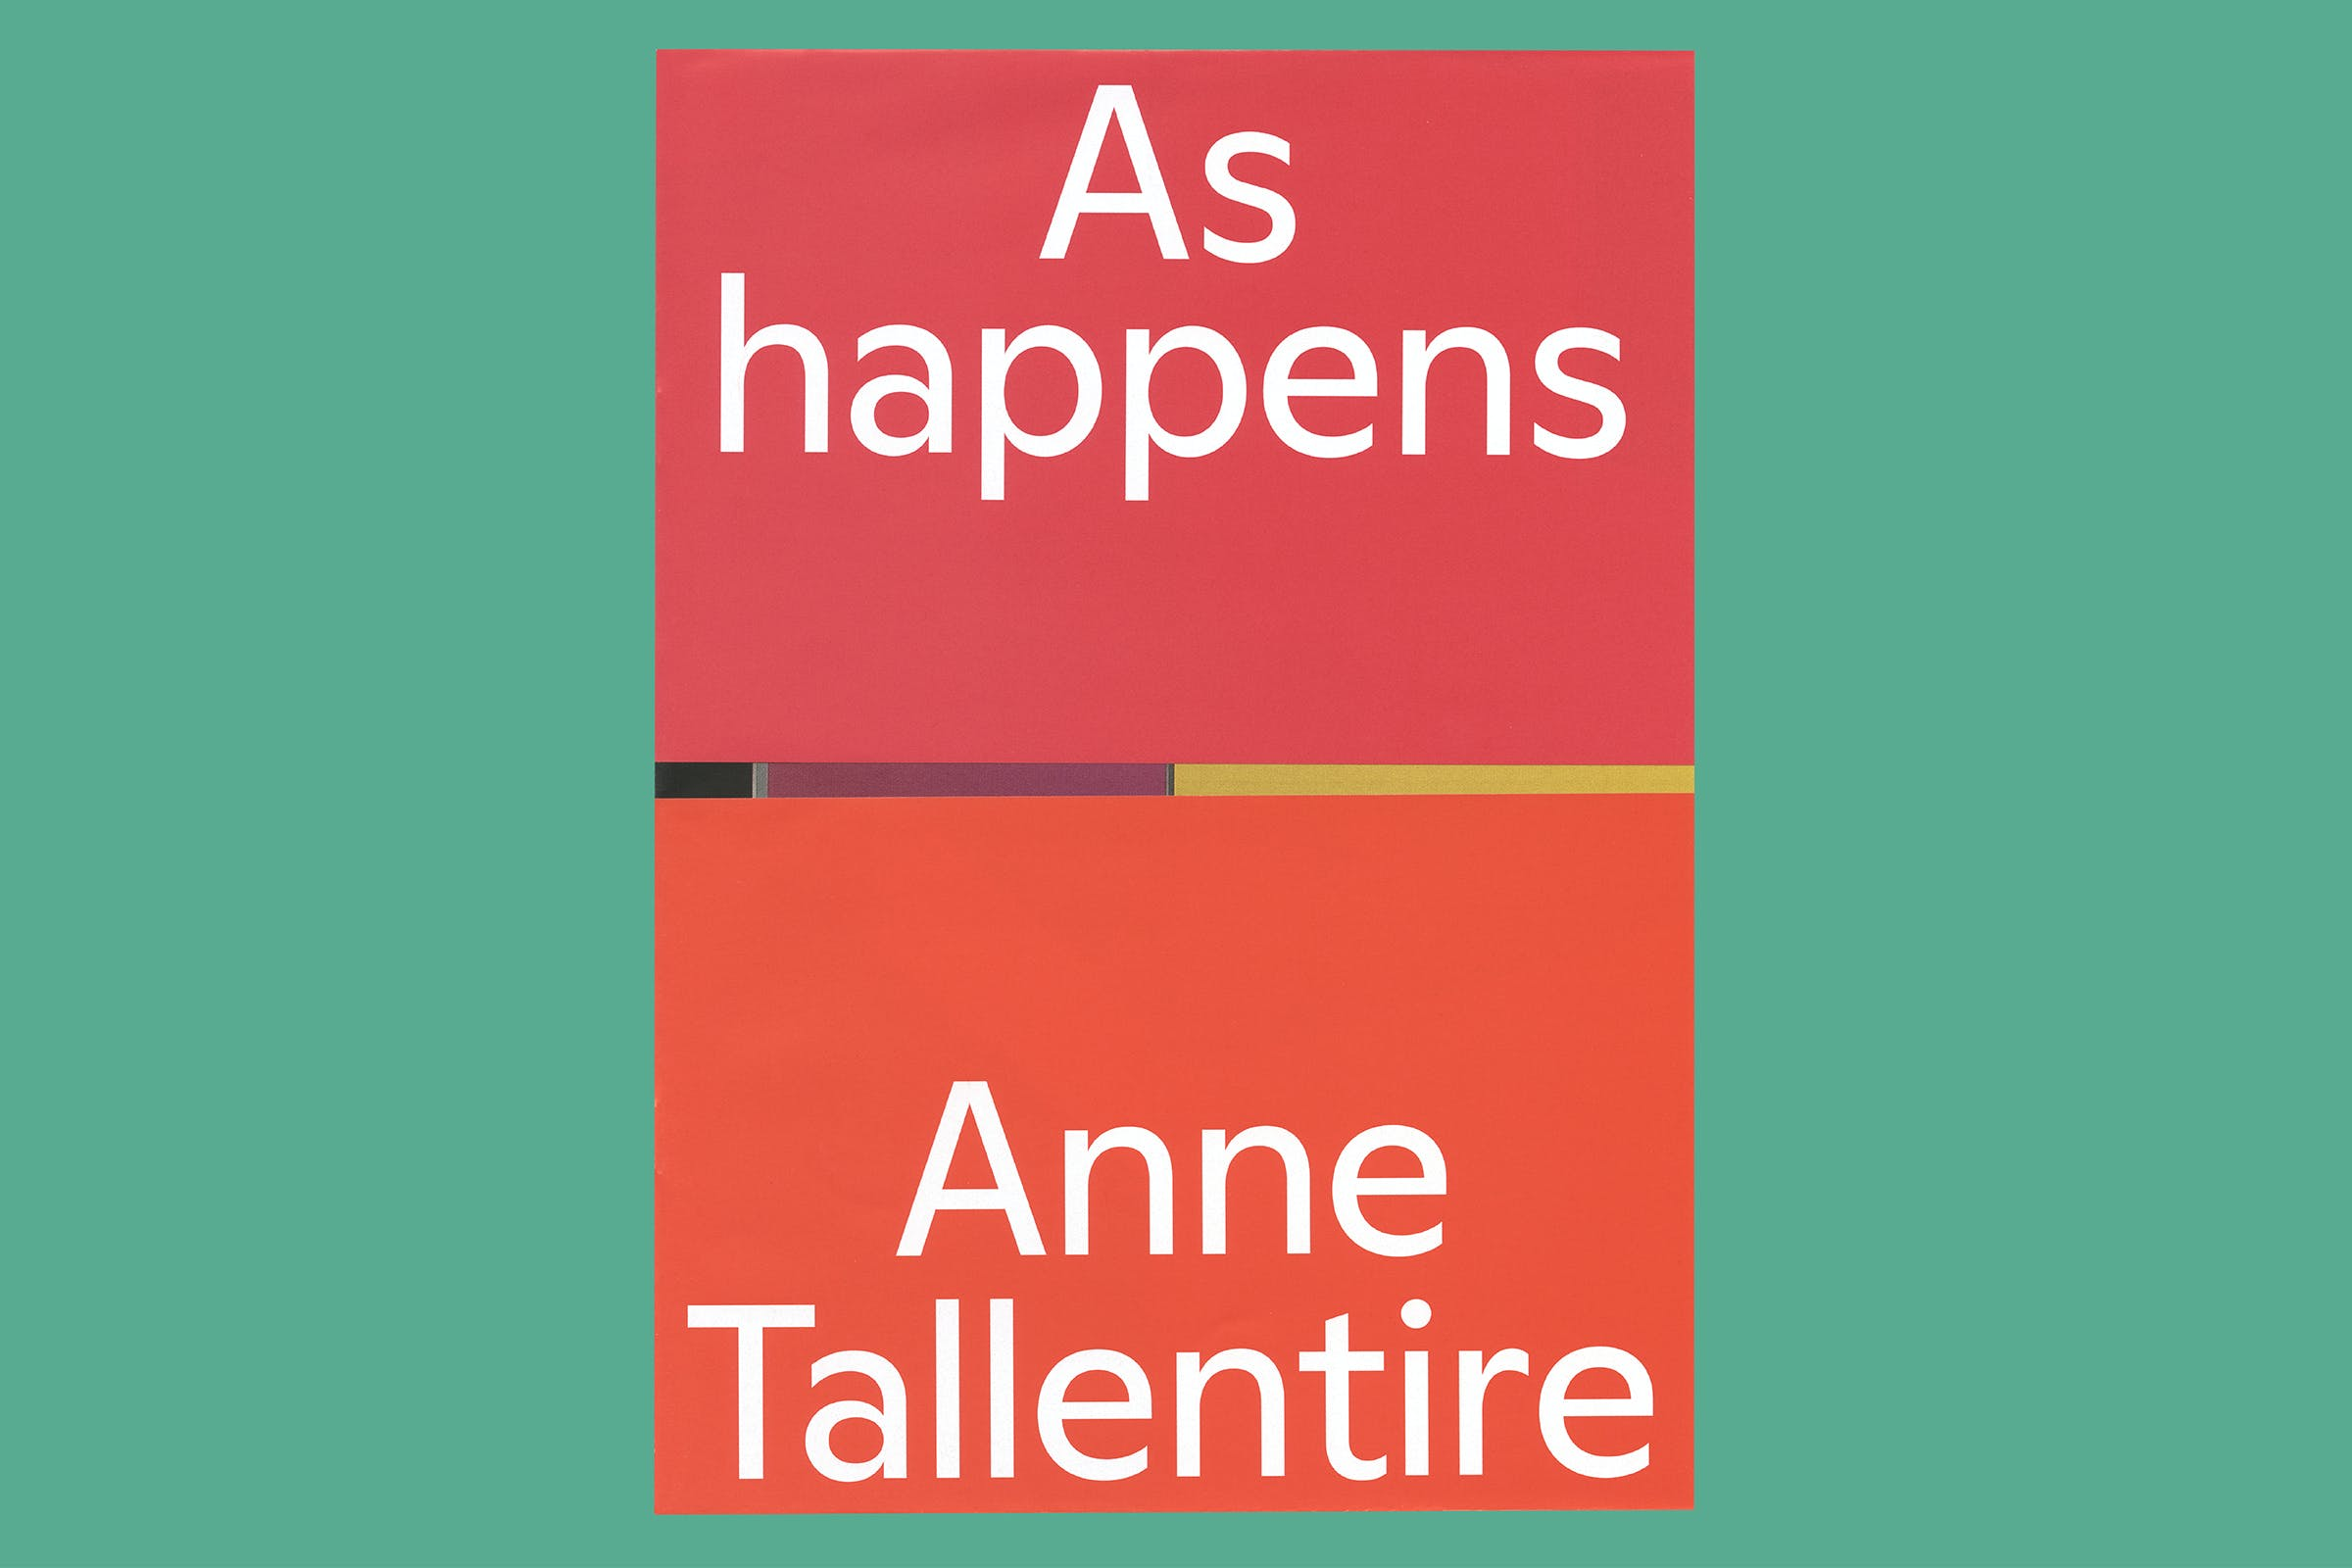 Hollybush Gardens, Anne Tallentire: As happens, Print, Graphic Design by Wolfe Hall